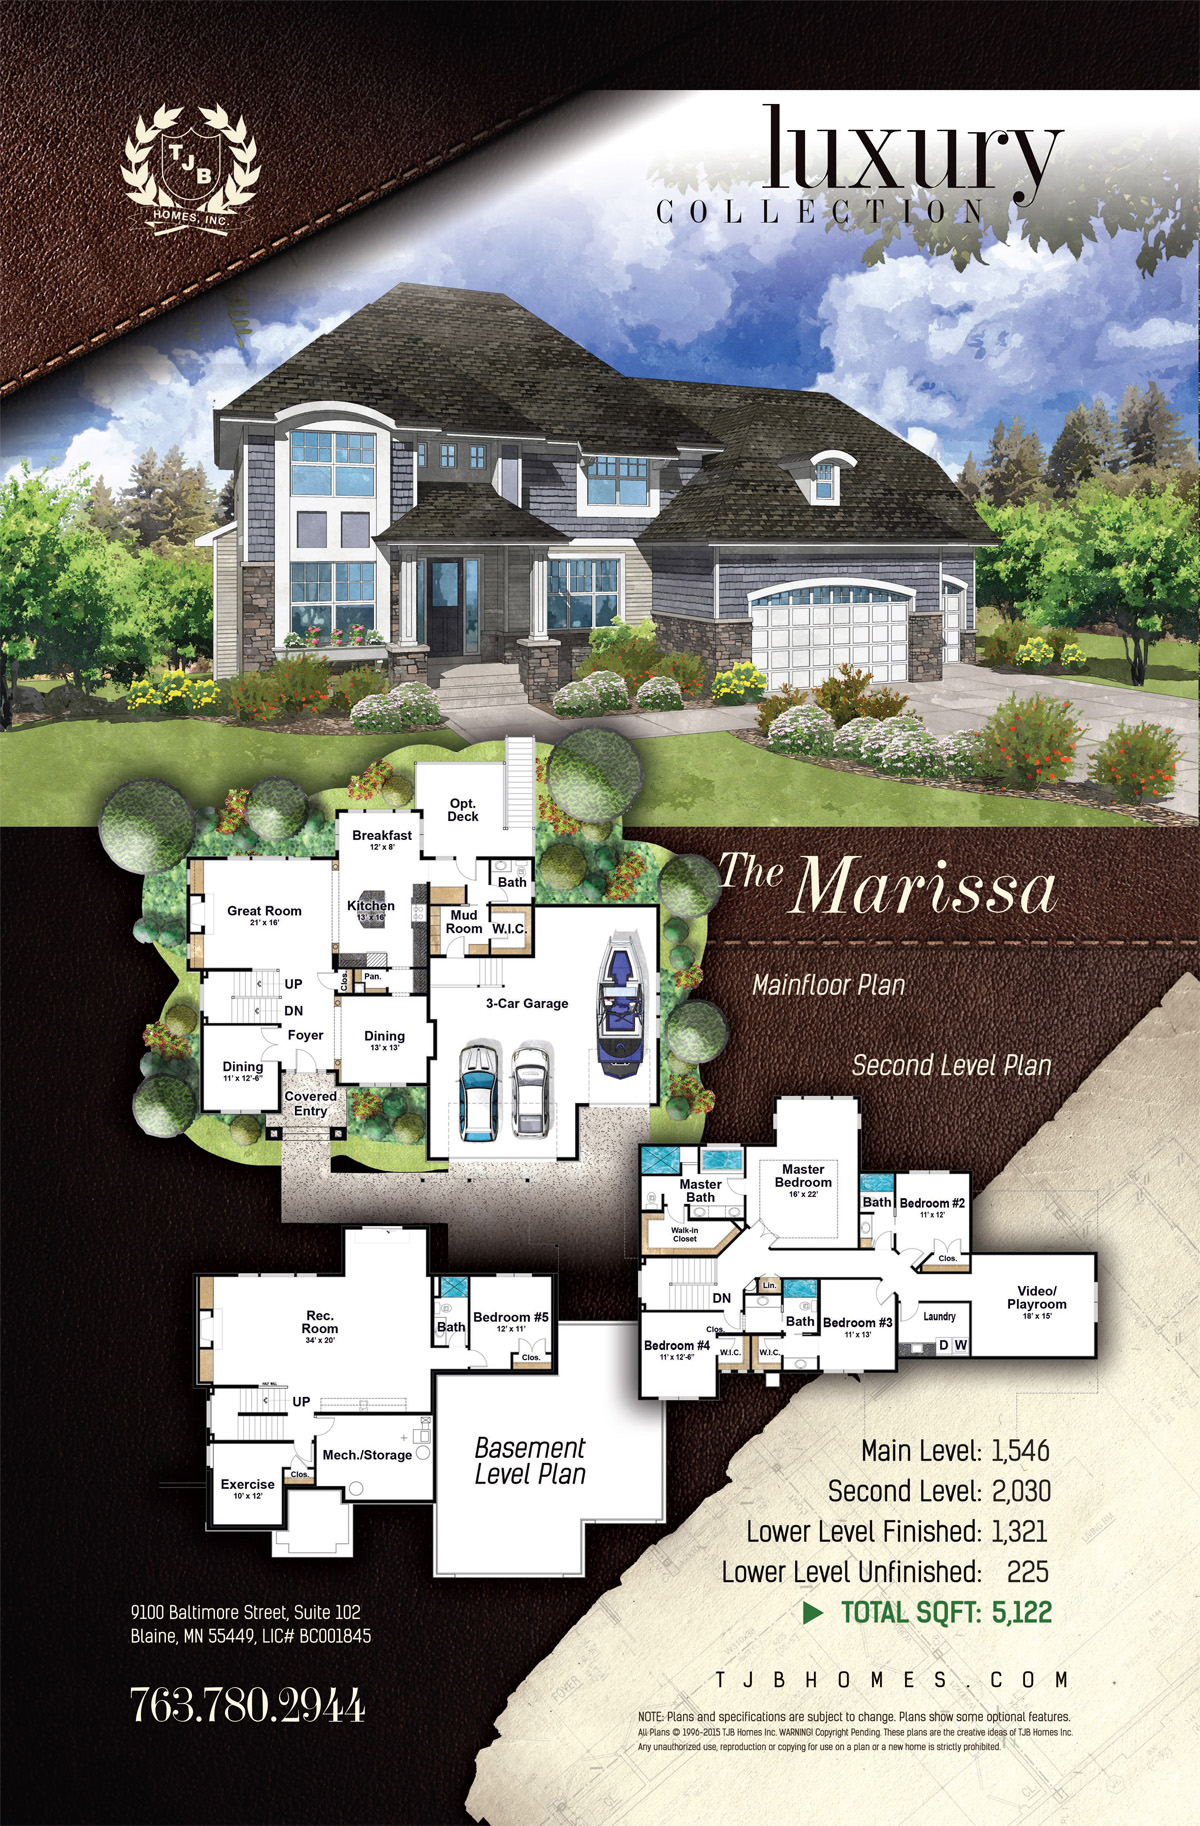 Luxury Collection Home Plans - The Marissa